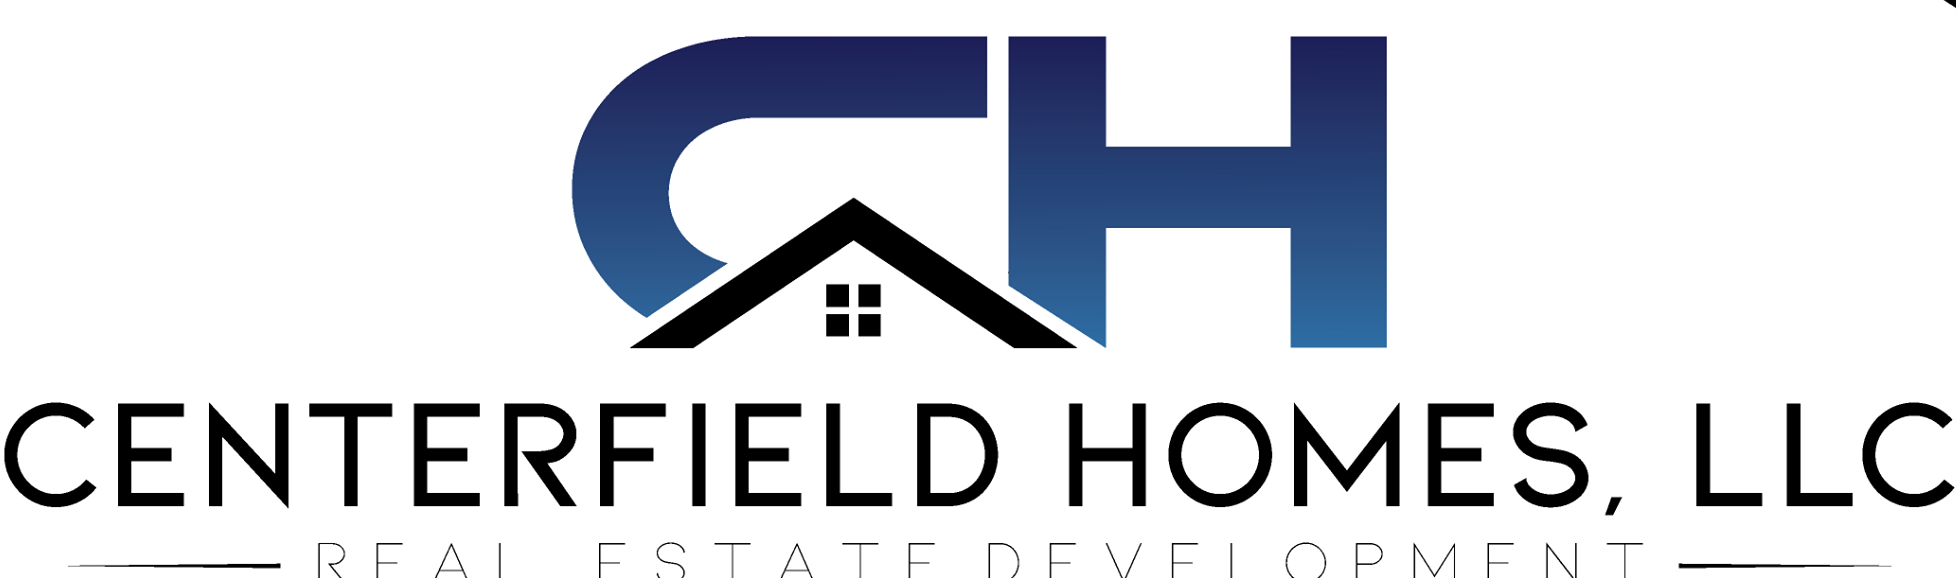 Centerfield Homes, LLC